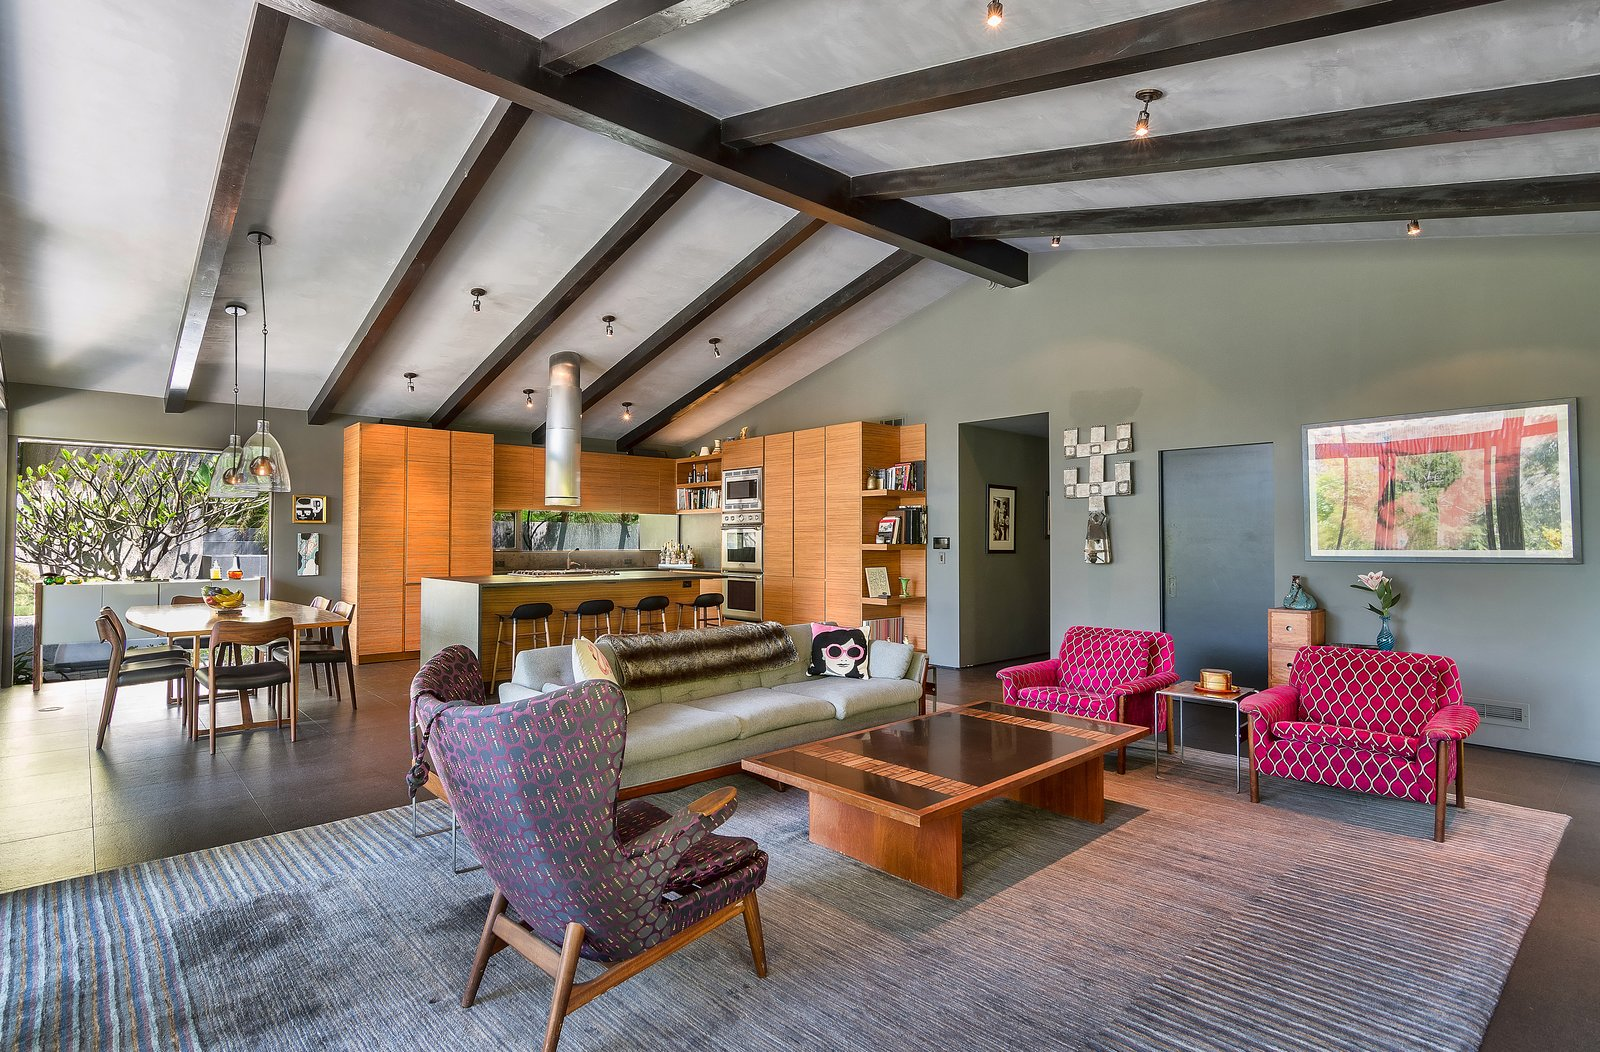 Living Room, Chair, Coffee Tables, Sofa, and Ceiling Lighting  Photo 4 of 14 in John Legend and Chrissy Teigen's Former Midcentury Home in the Hollywood Hills Is For Sale